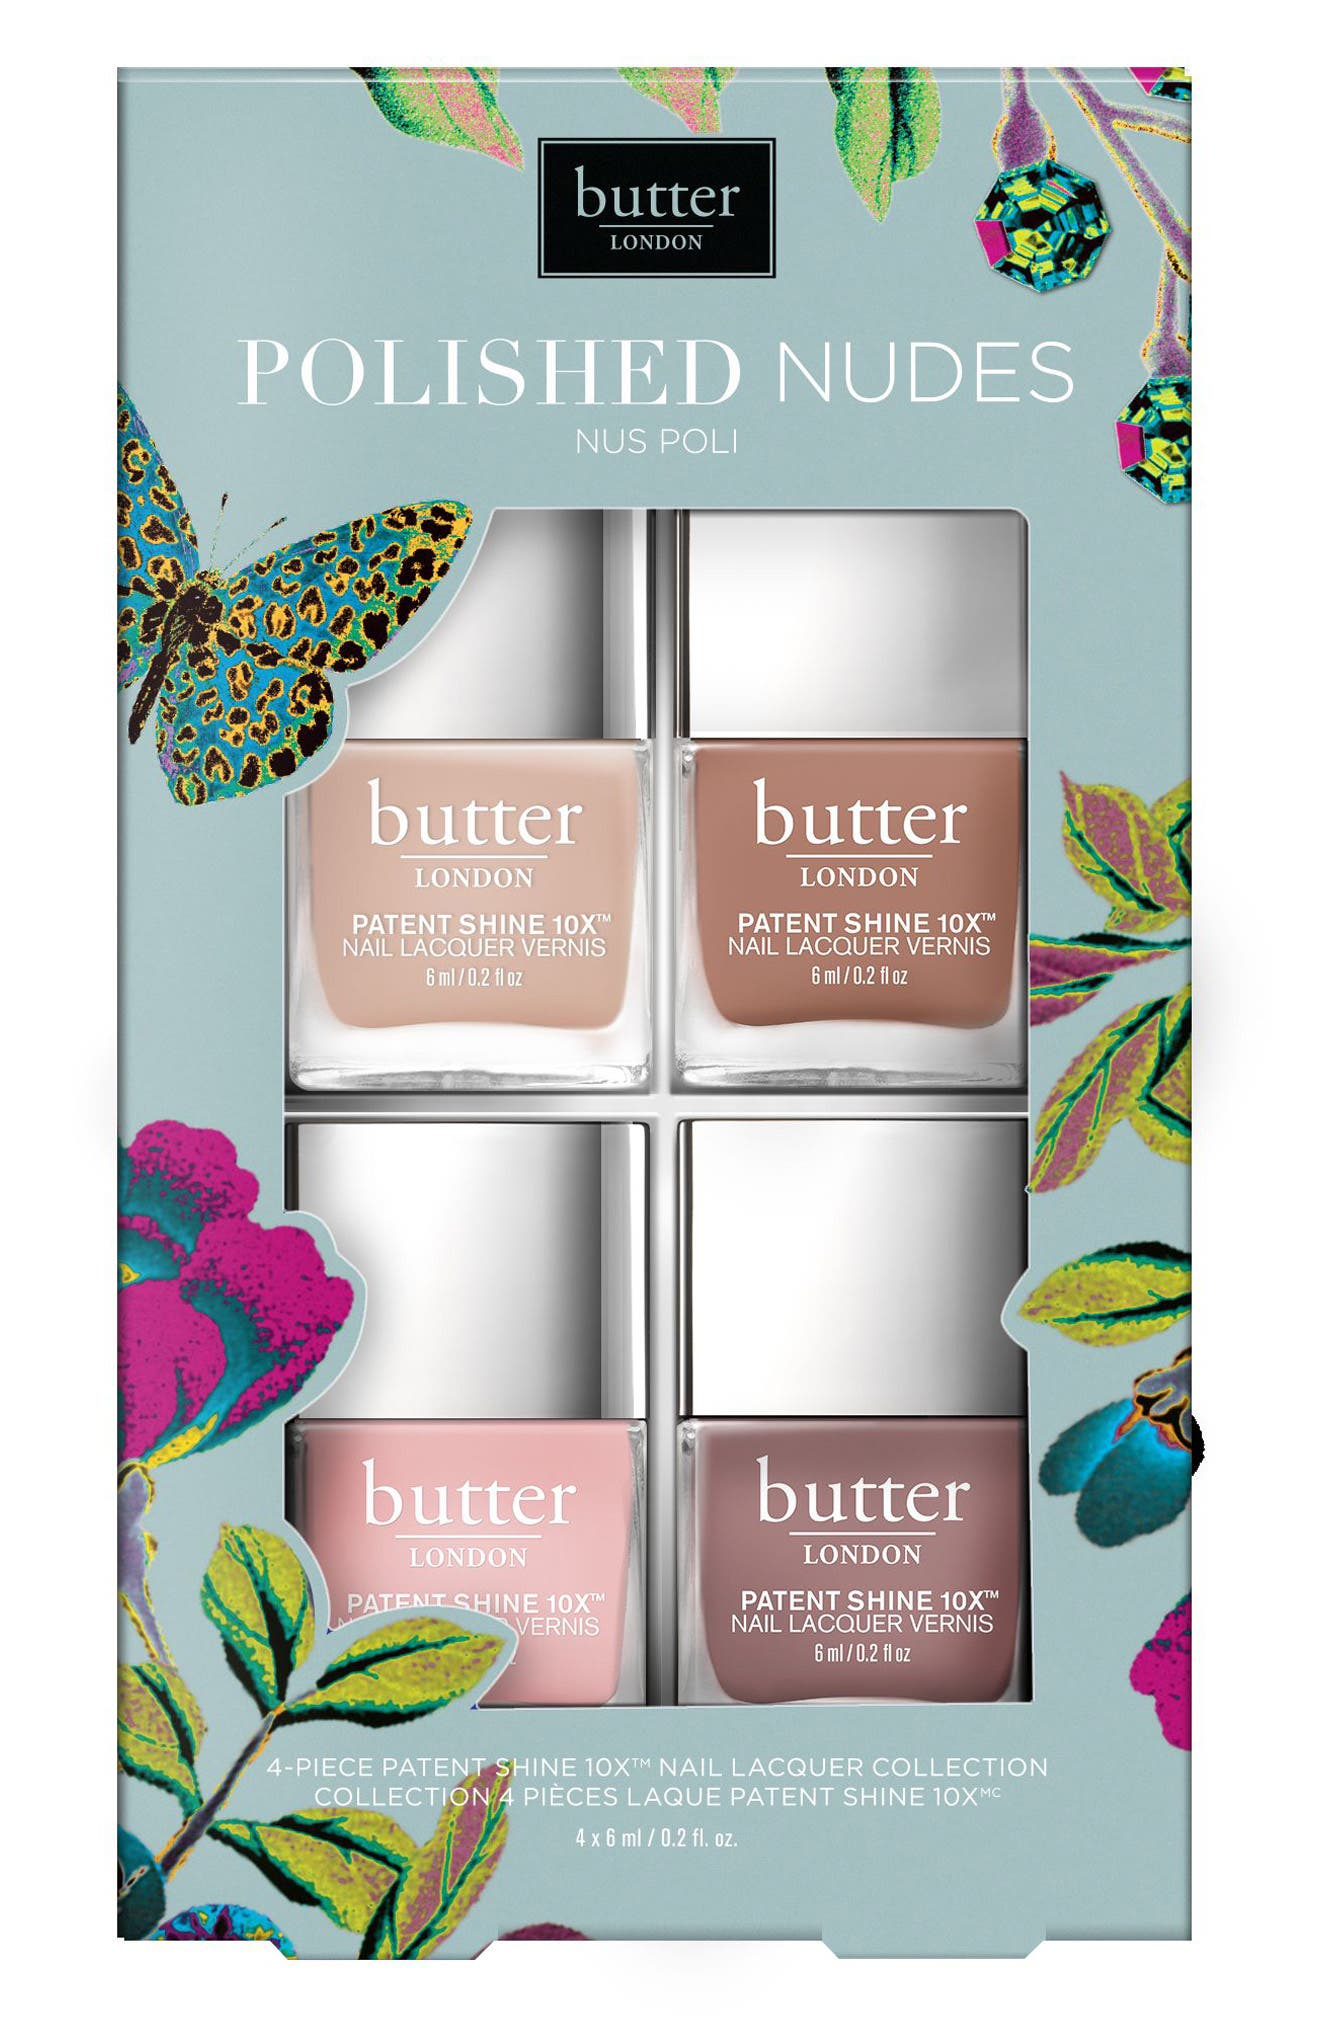 butter LONDON Polished Nudes Patent Shine 10x™ Nail Lacquer Set (Limited Edition) (Nordstrom Exclusive)